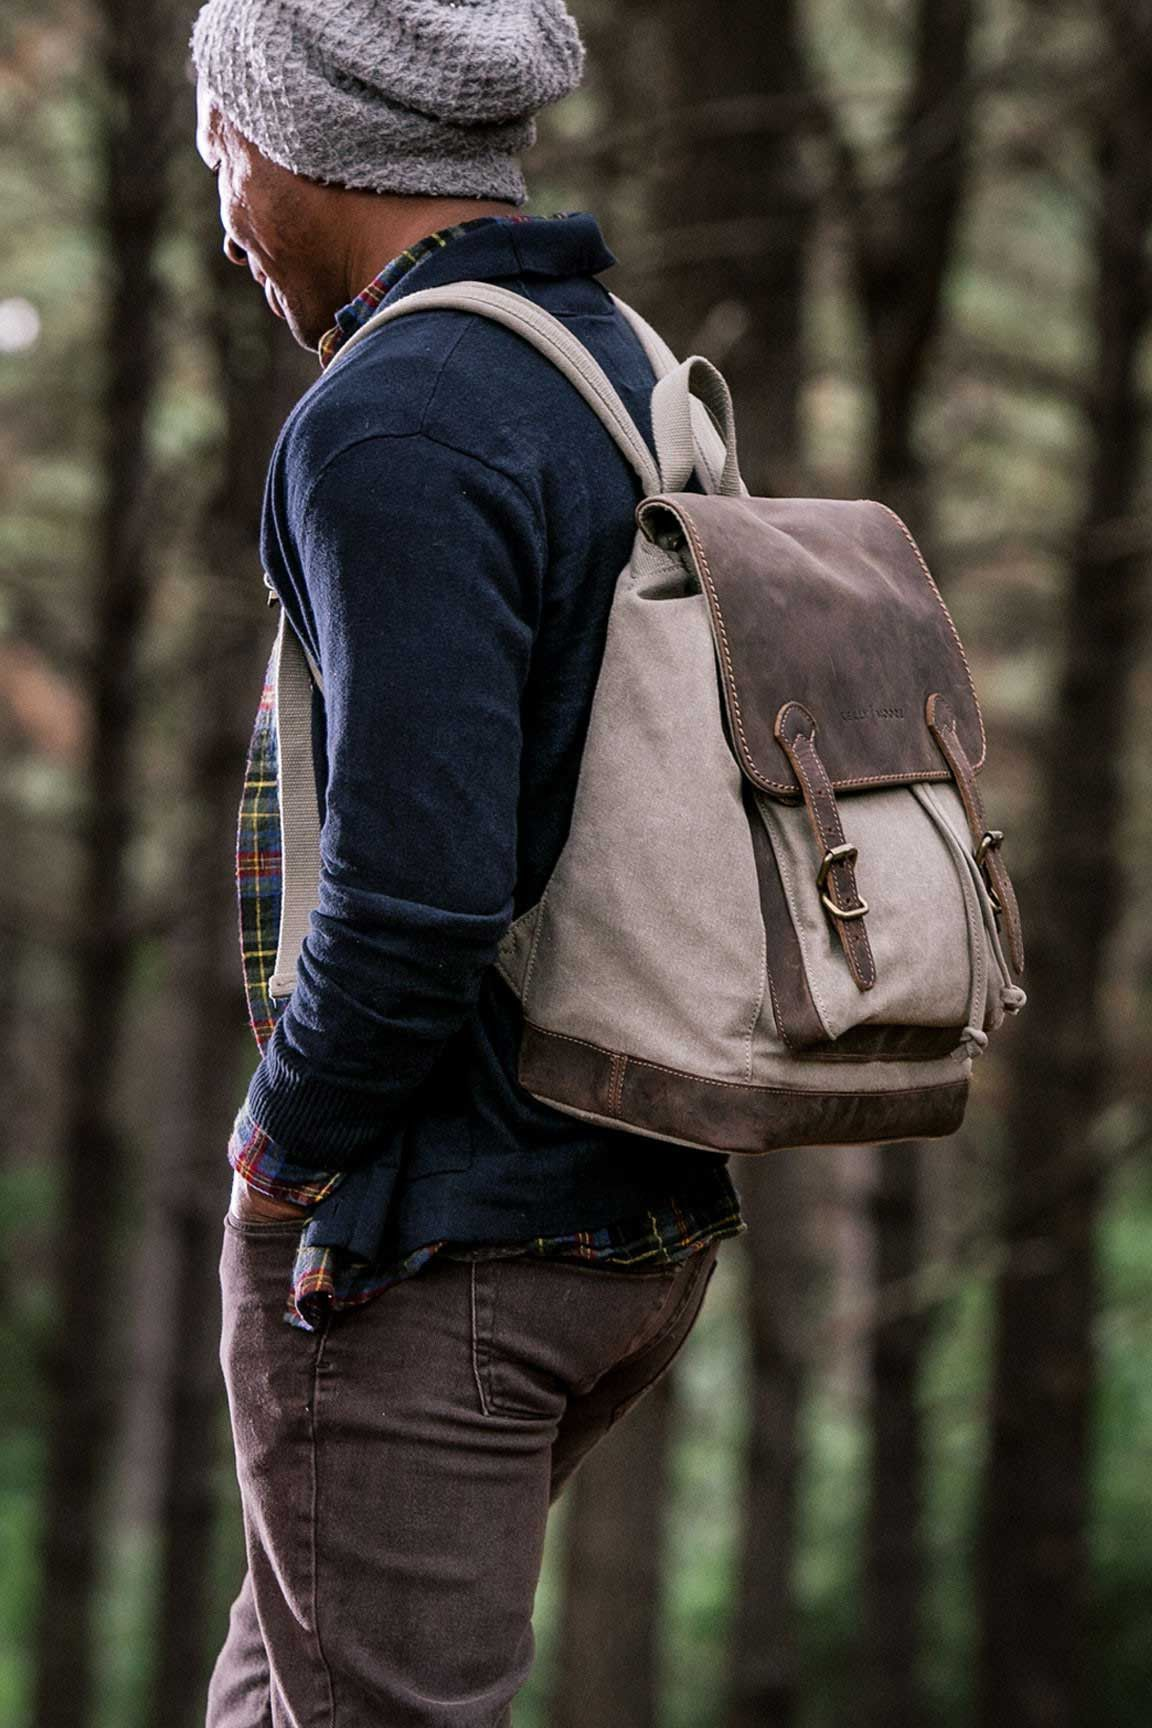 4bff39796 Official Kelly Moore Bag's site. Camera. Pilot Backpack for men and women.  Take the Pilot with you on a hike, school, plane, while you ride your bike